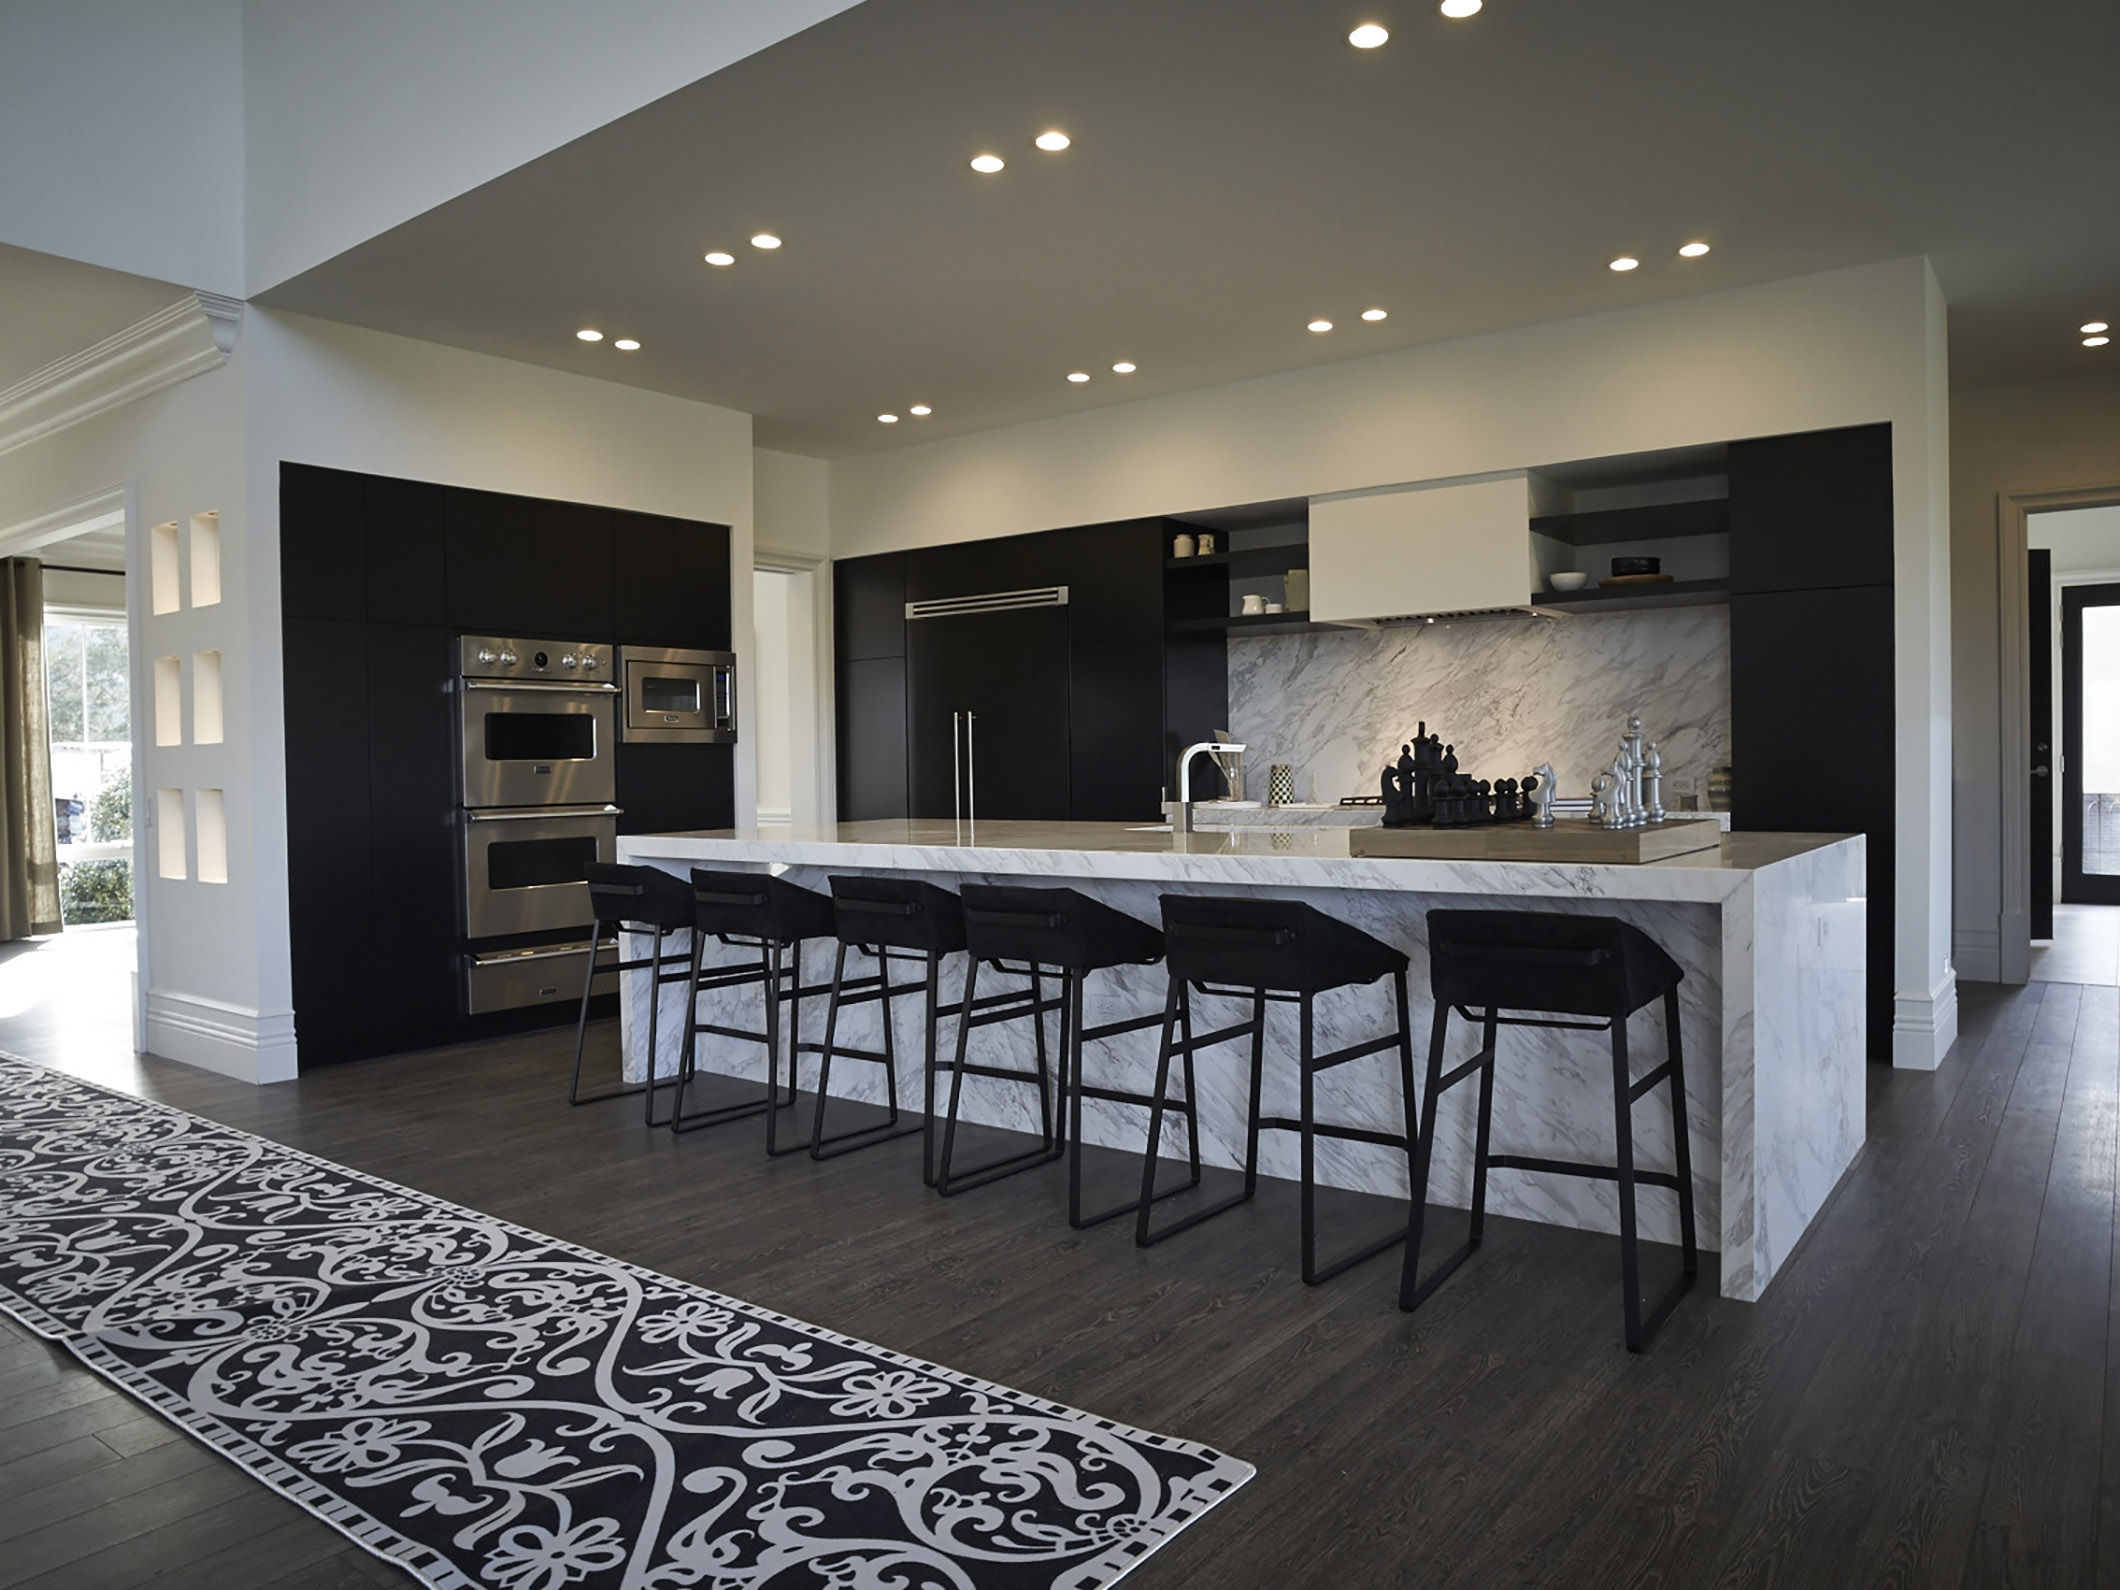 Hovnanian homes at Willowsford with KEKKE kitchen stool